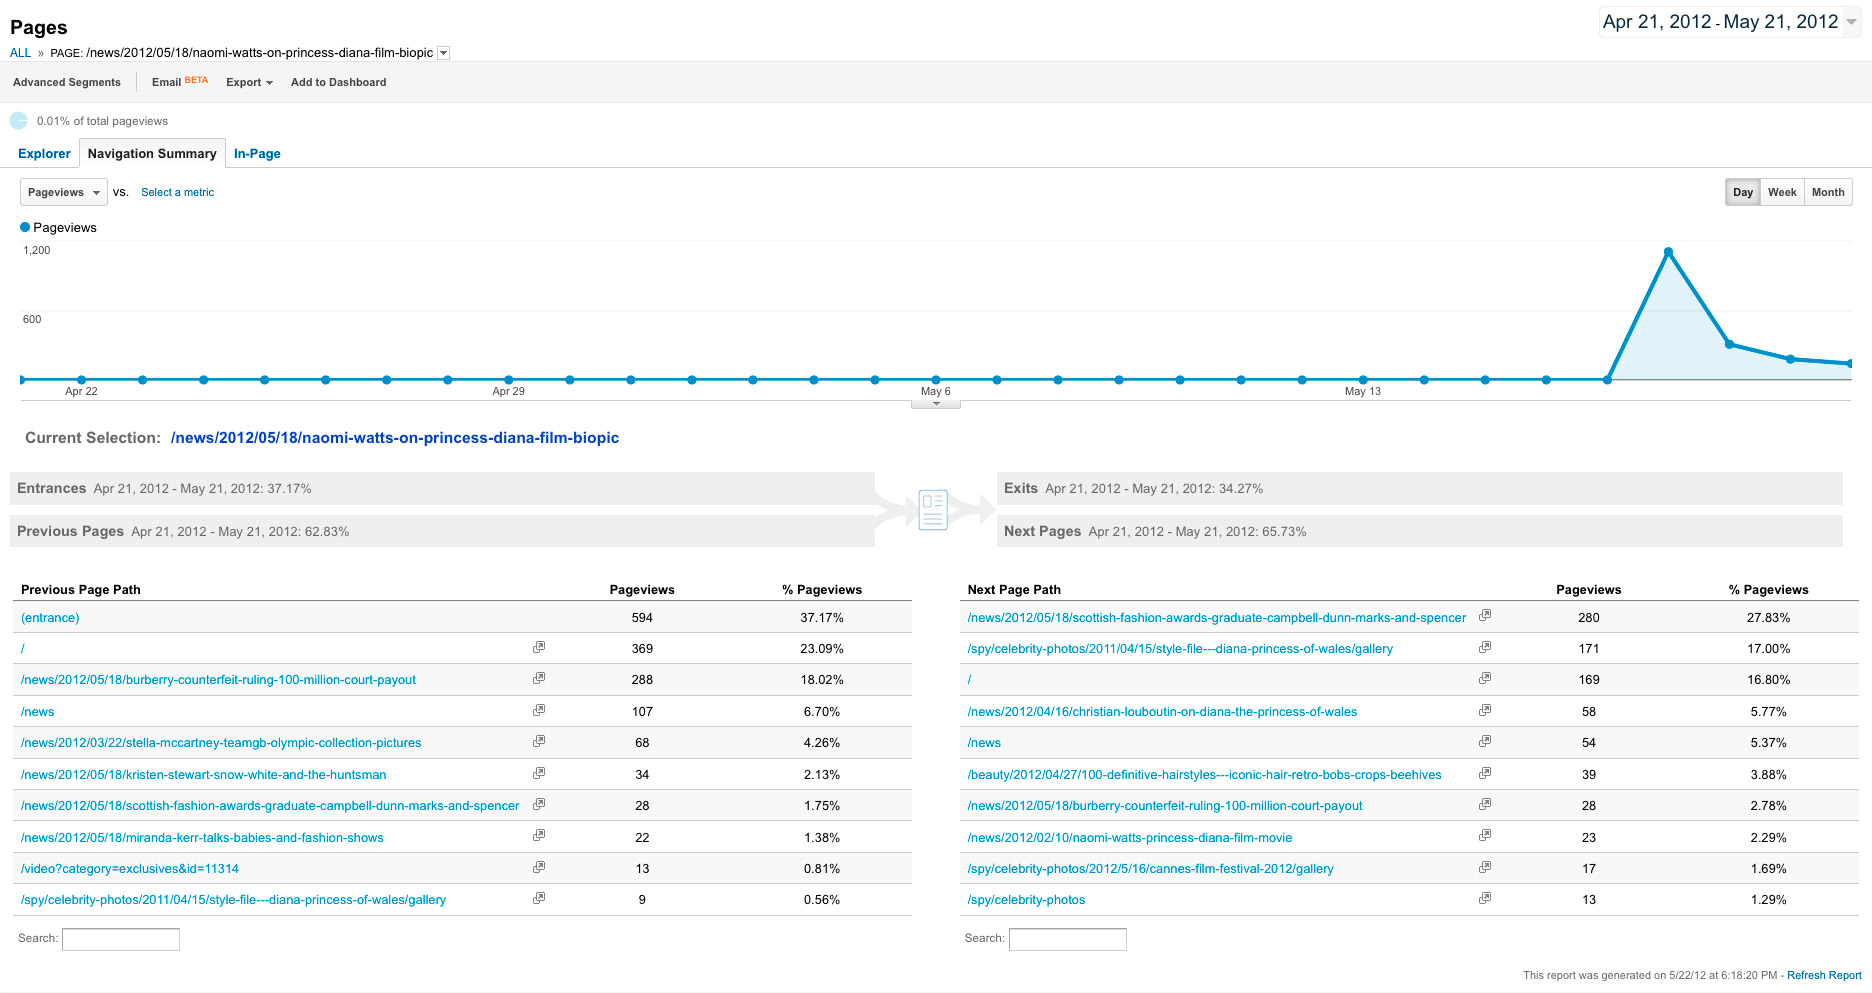 Article next pages from Google Analytics